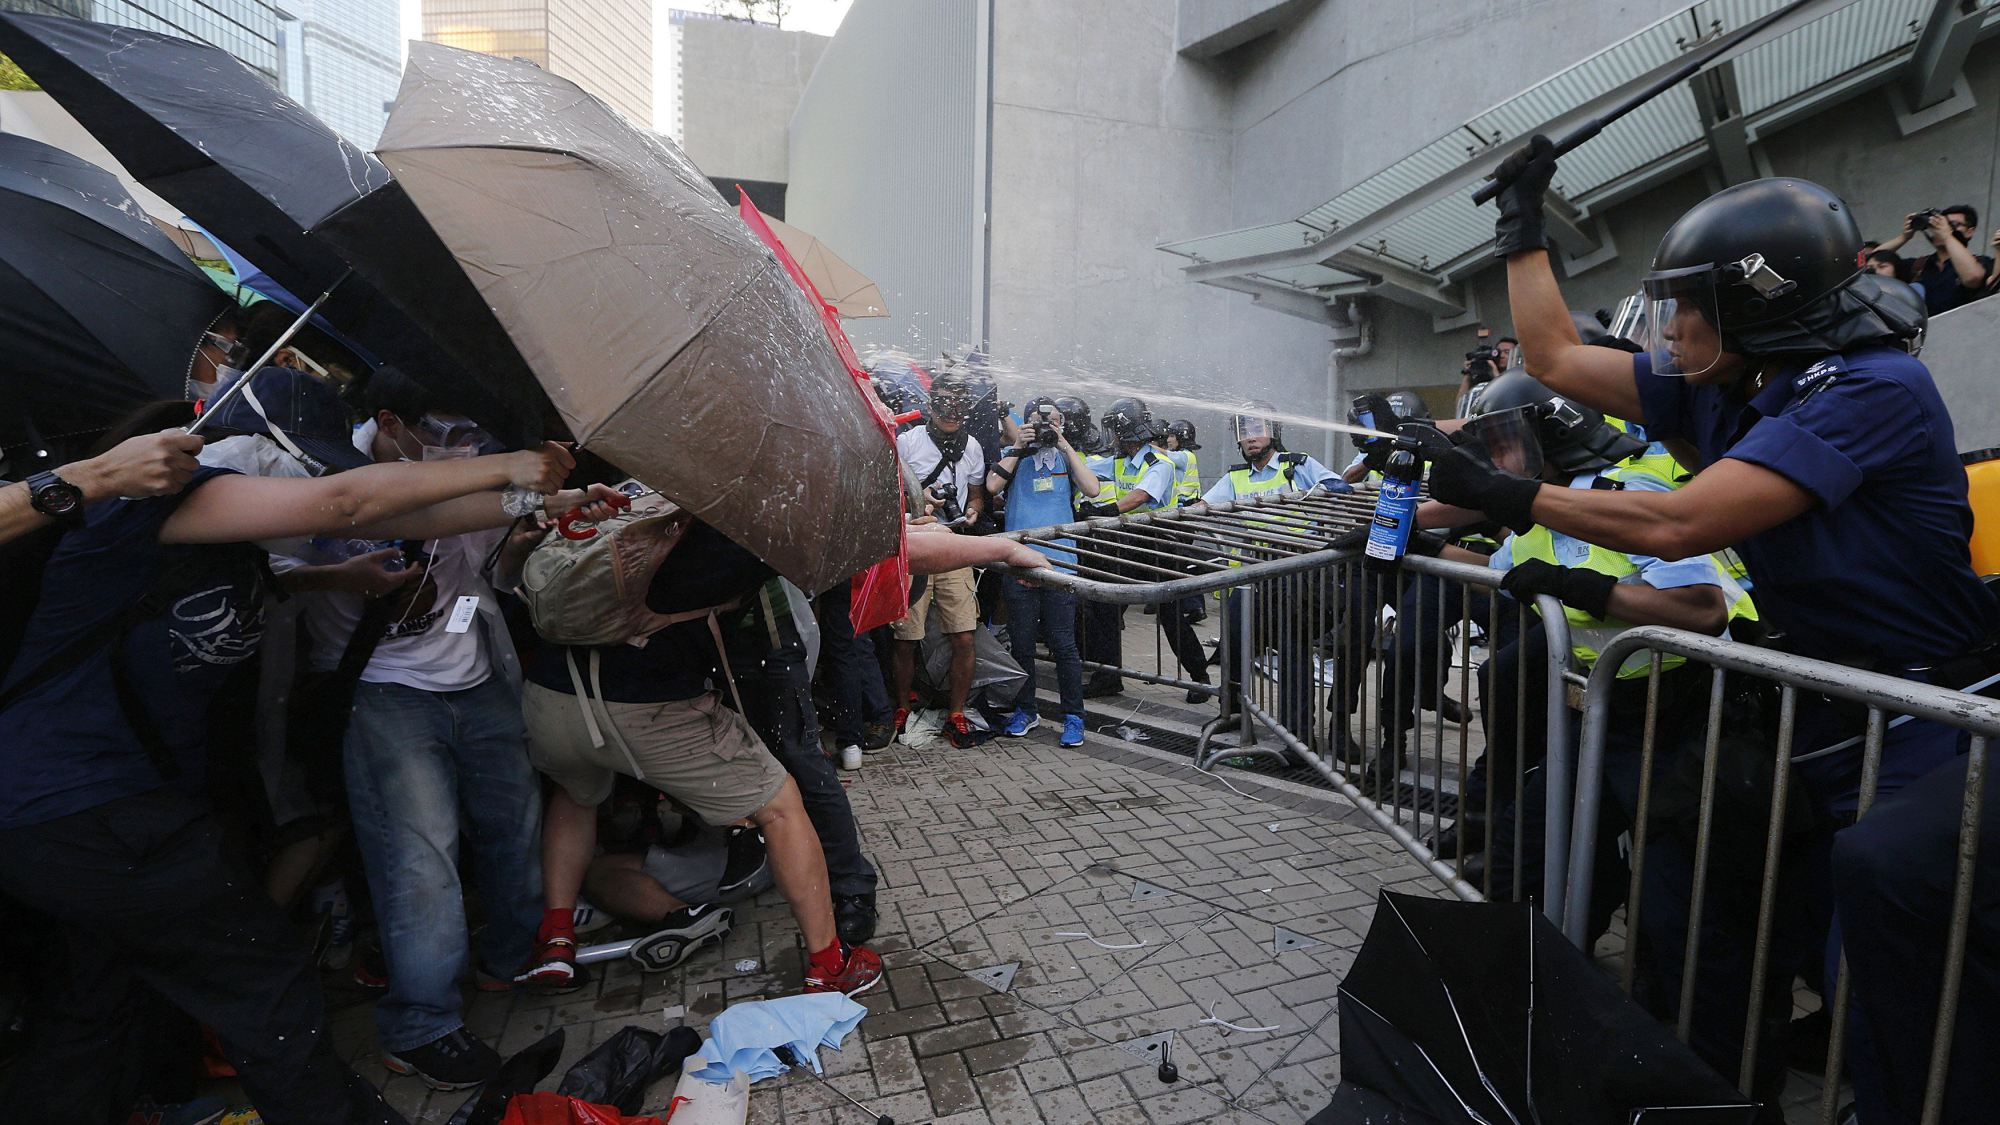 hong kong revolution essay Richard bush recently delivered testimony on the impact of the umbrella movement in hong kong before the subcommittee on east asian and pacific affairs of the.